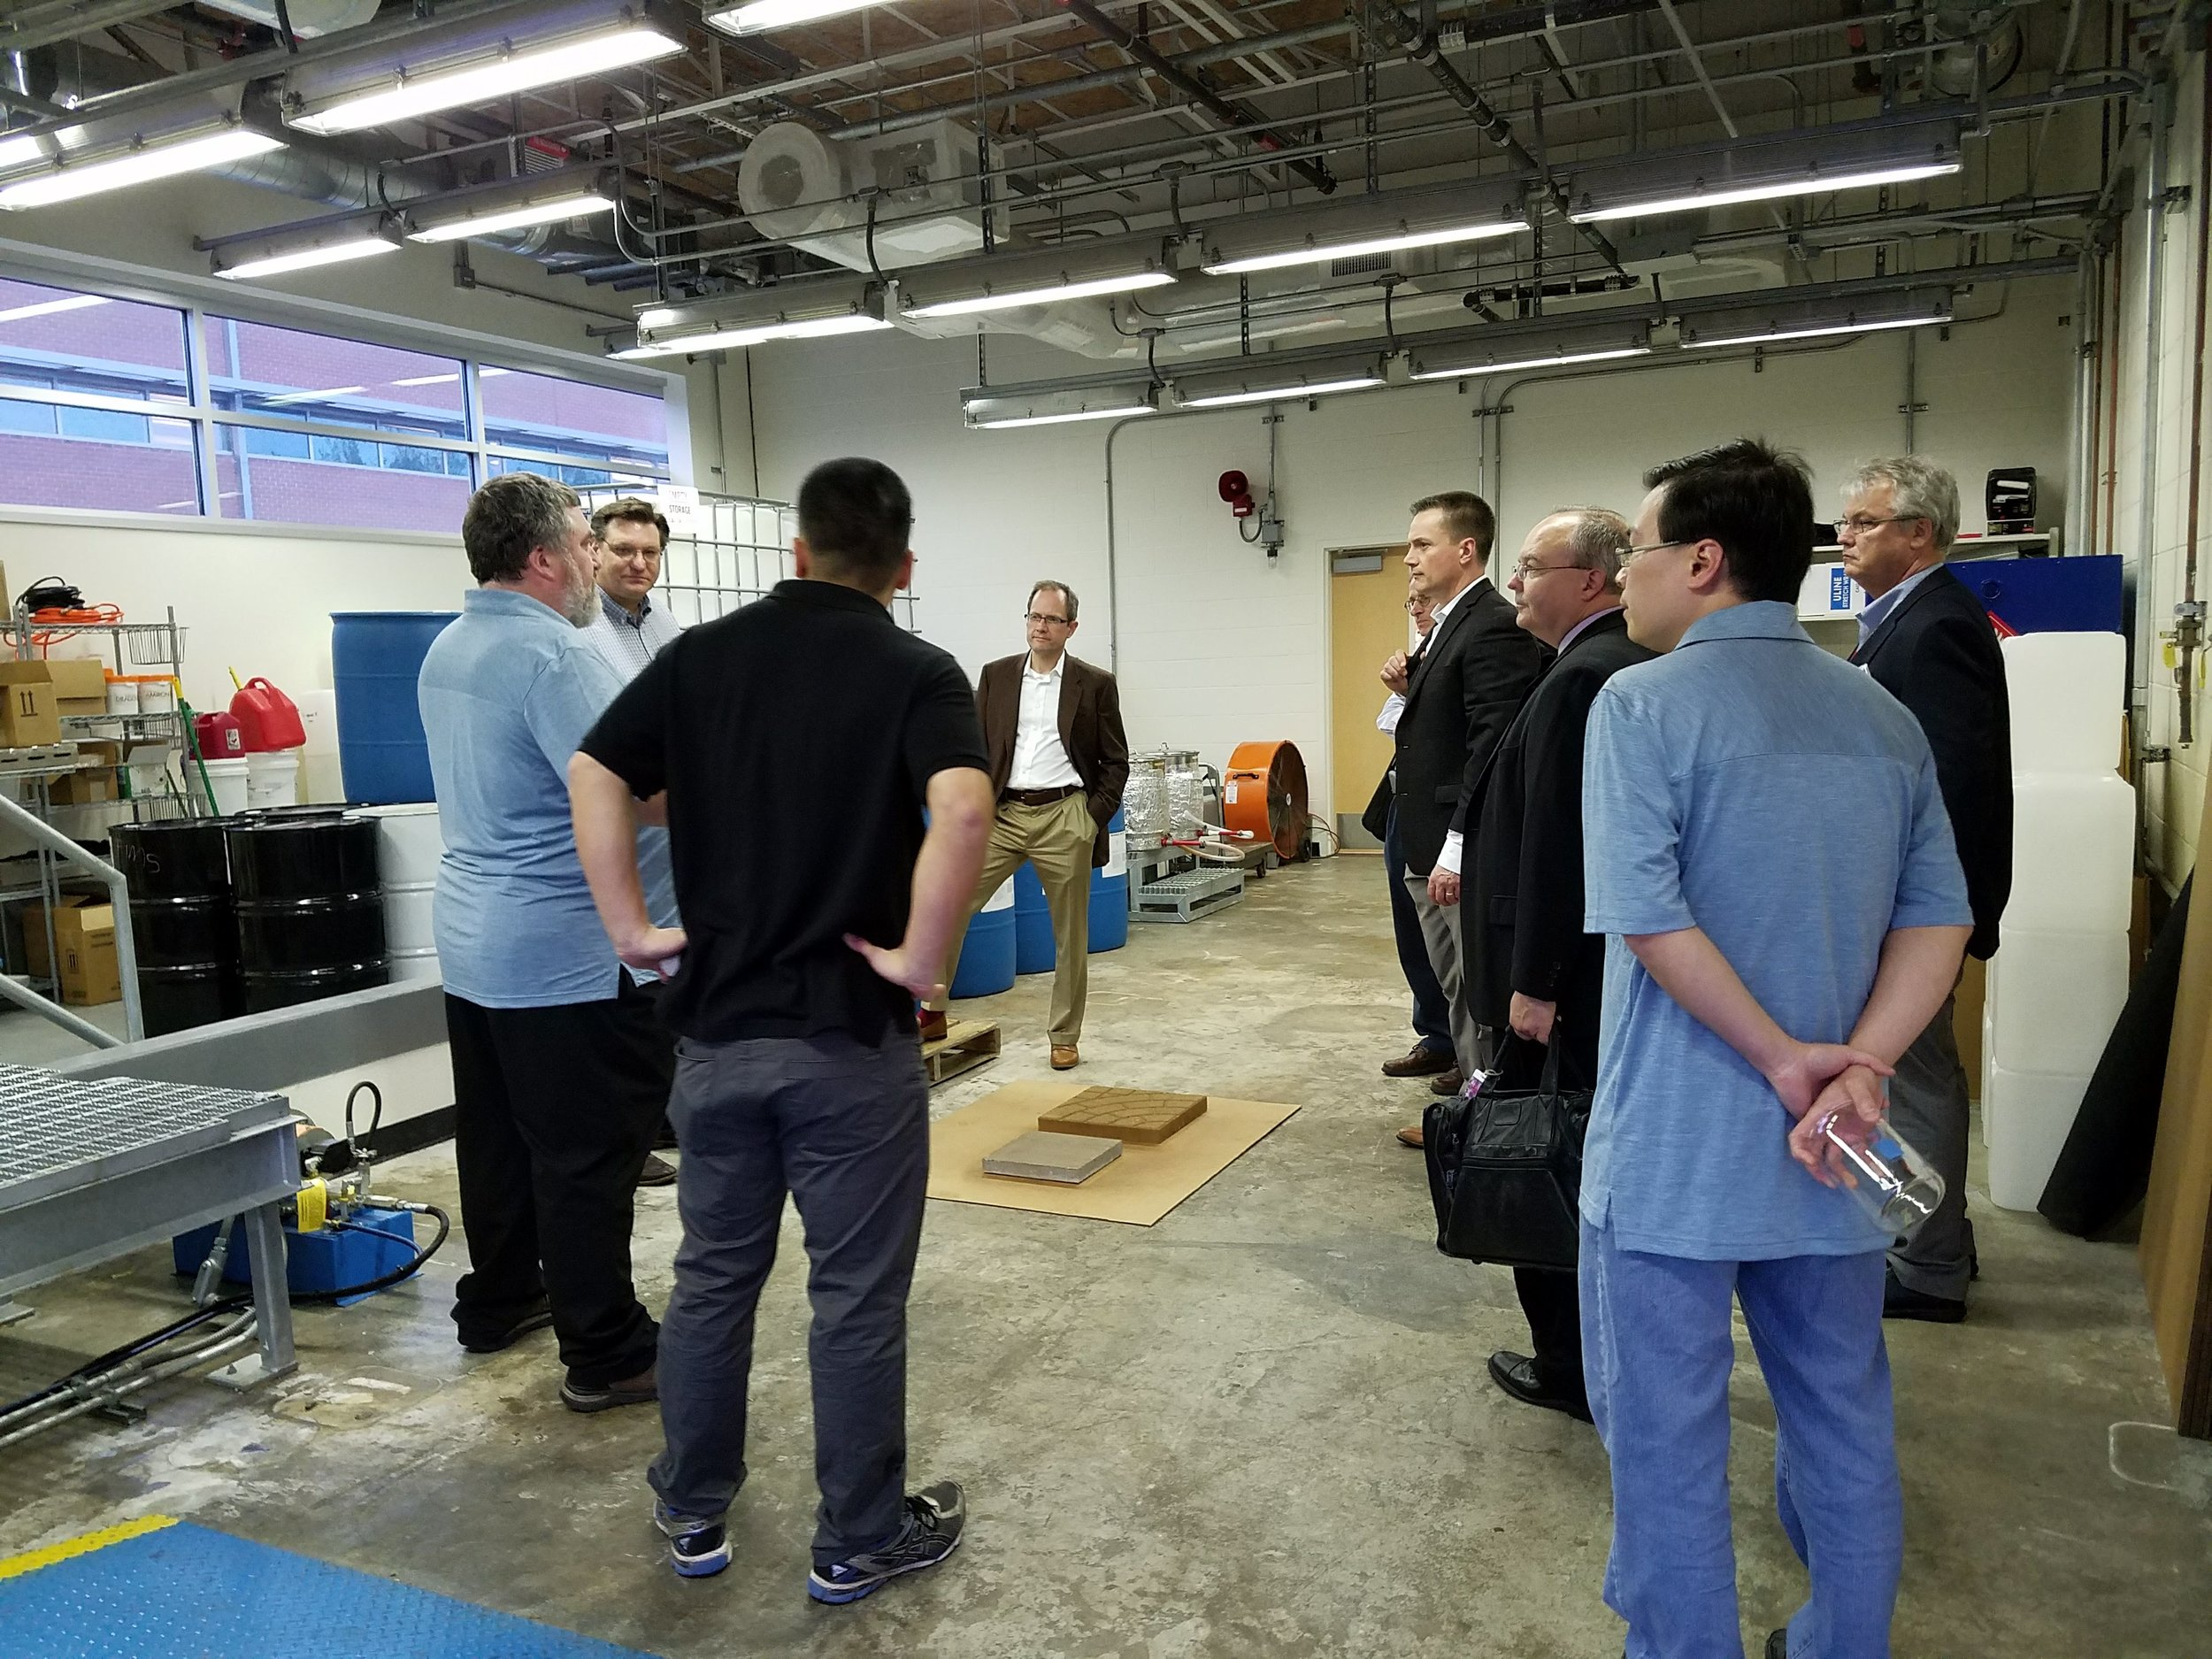 Prof. Shay Curran explaining Integricote's core technologies to the SHERWIN-WILLIAMS team.